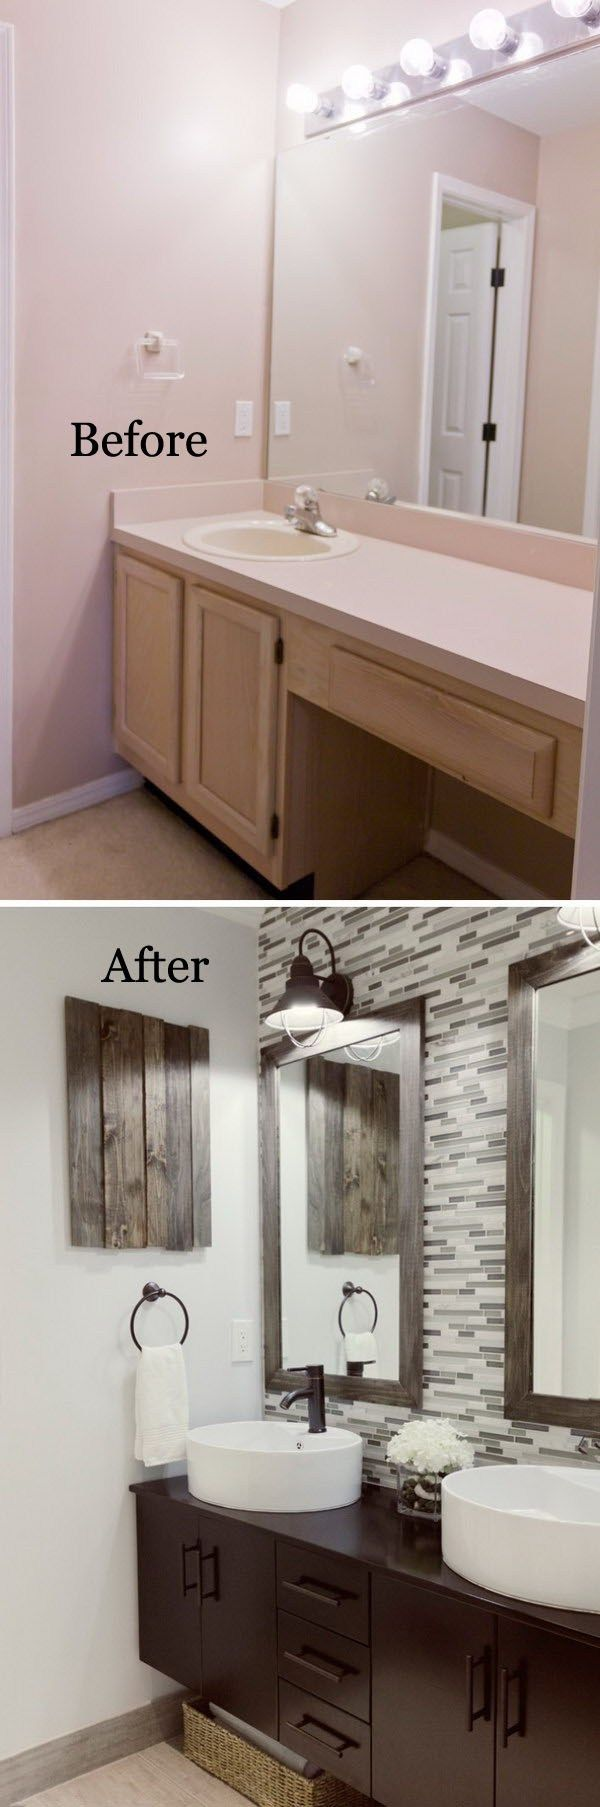 37 Small Bathroom Makeovers Before And After Pics Bath Diy Bathroom Remodel Bathroom